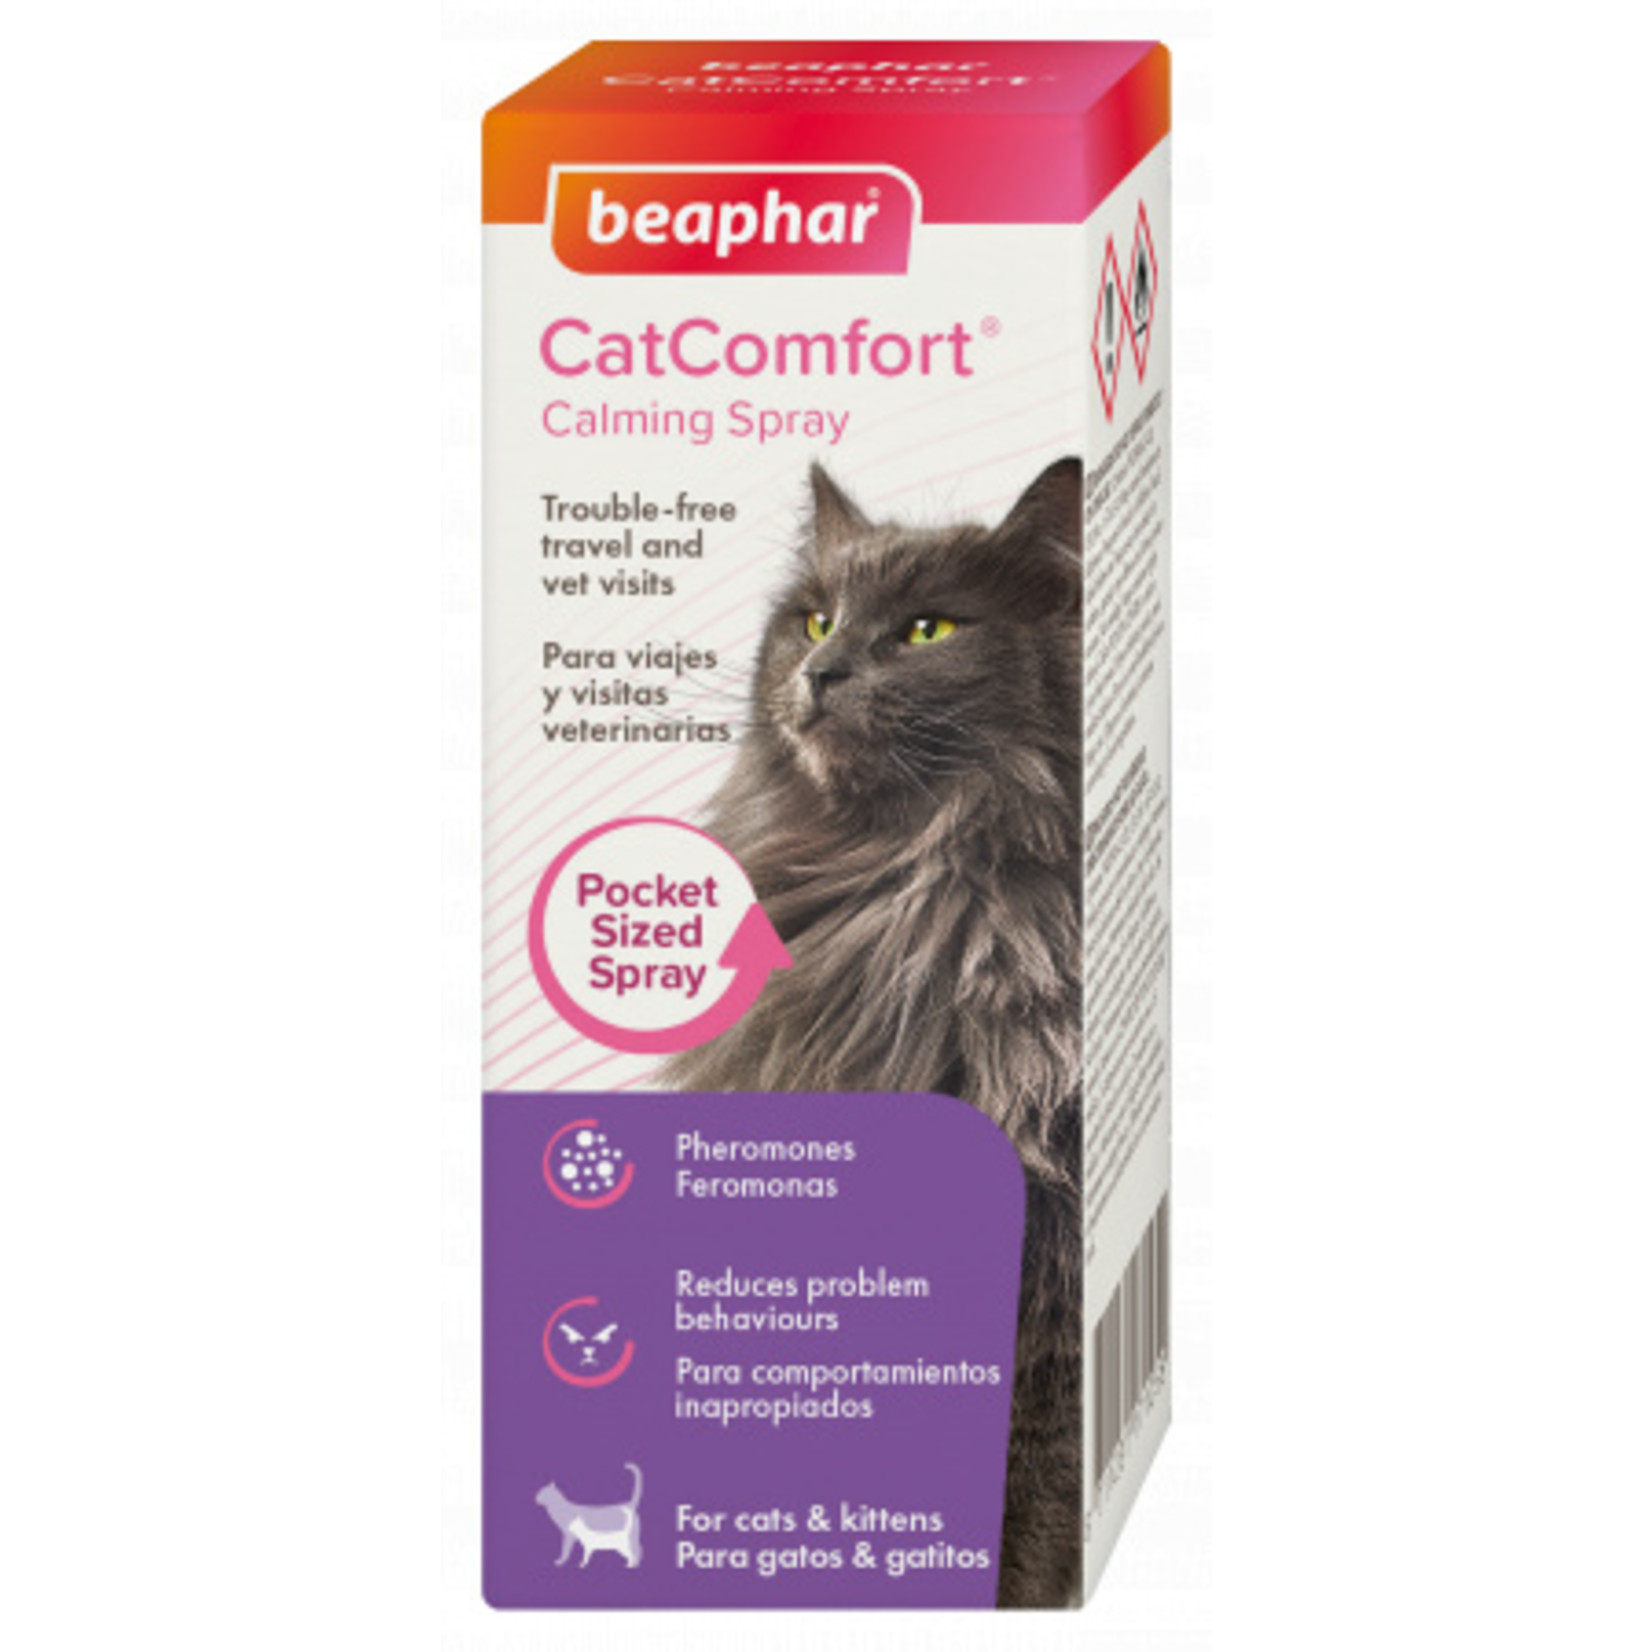 Beaphar CatComfort Calming Spray, 30ml